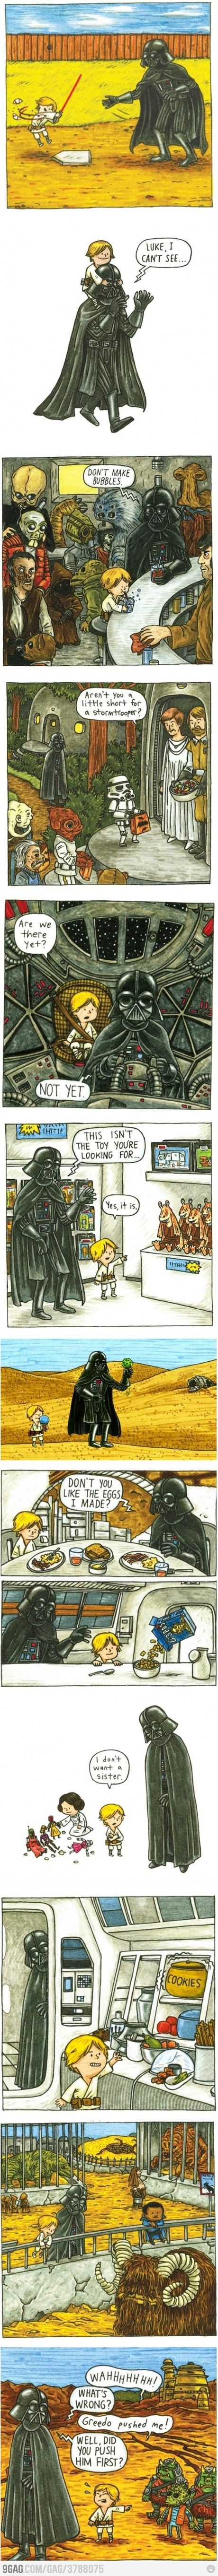 If Darth Vader had been a good father... #LOL